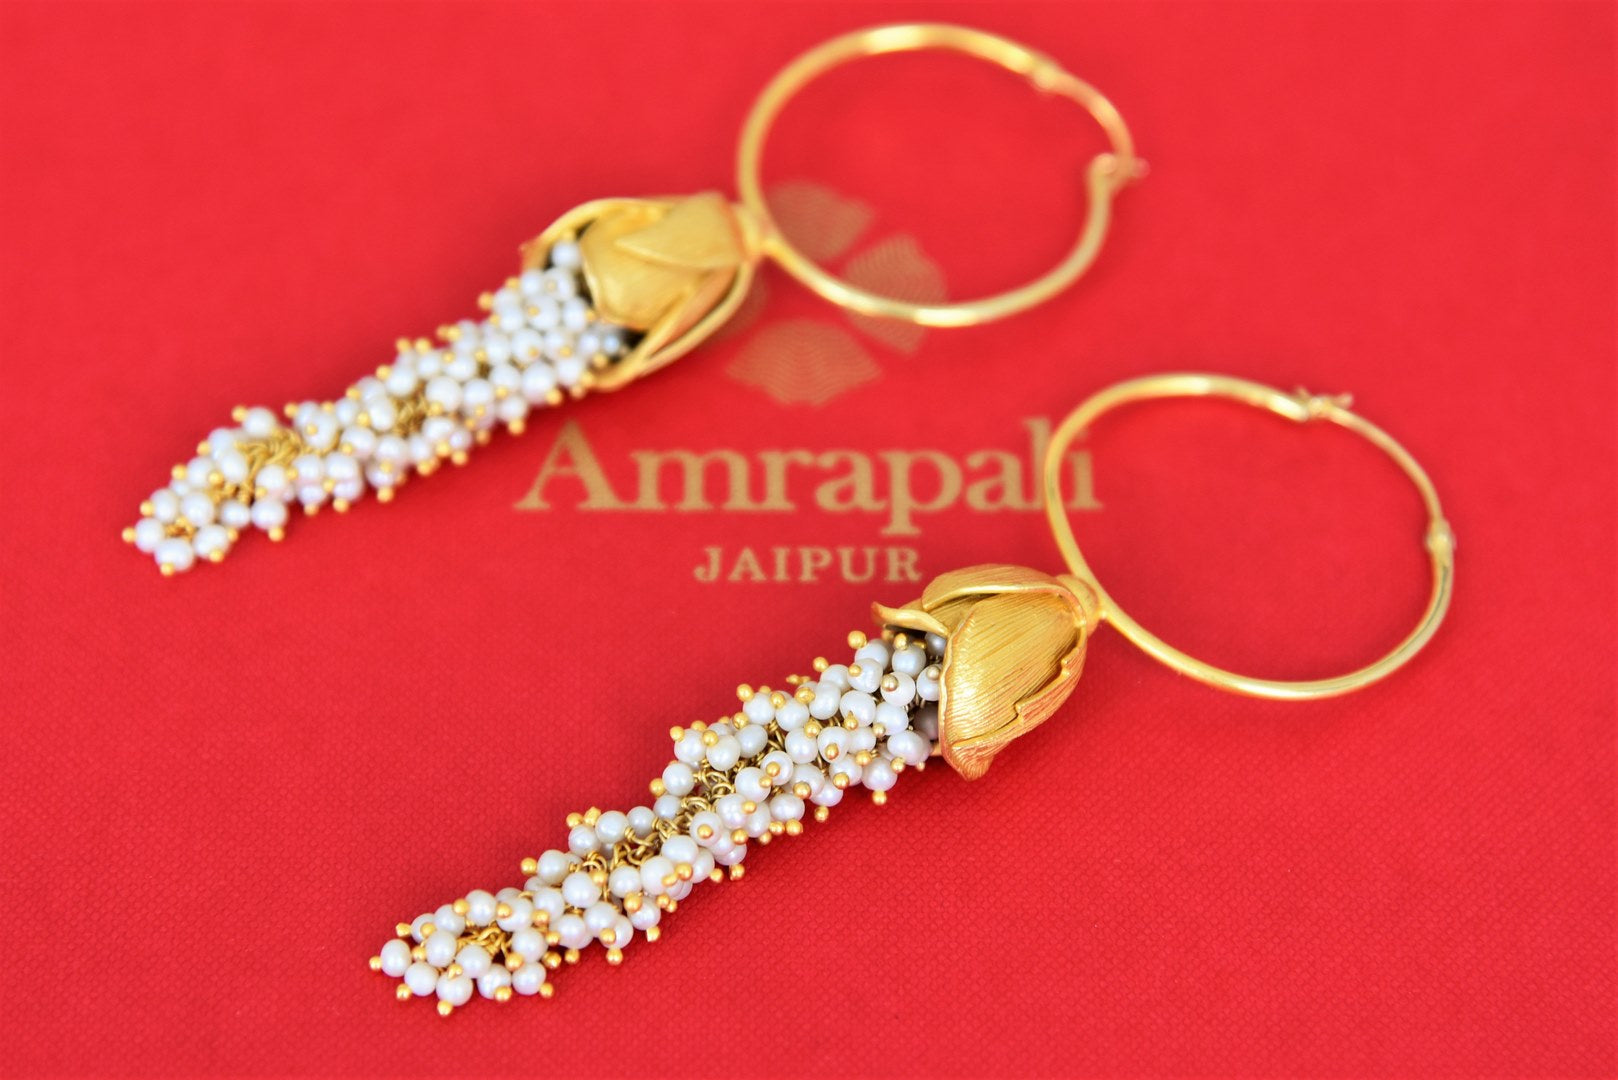 Buy Amrapali silver gold plated hoop earrings online in USA with clustered pearls tassels. Find an exquisite collection of handcrafted Indian jewelry in USA at Pure Elegance Indian fashion store. Complete your festive look with beautiful silver gold plated necklaces, silver gold plated earrings, silver jewelry from our online store.-flatlay